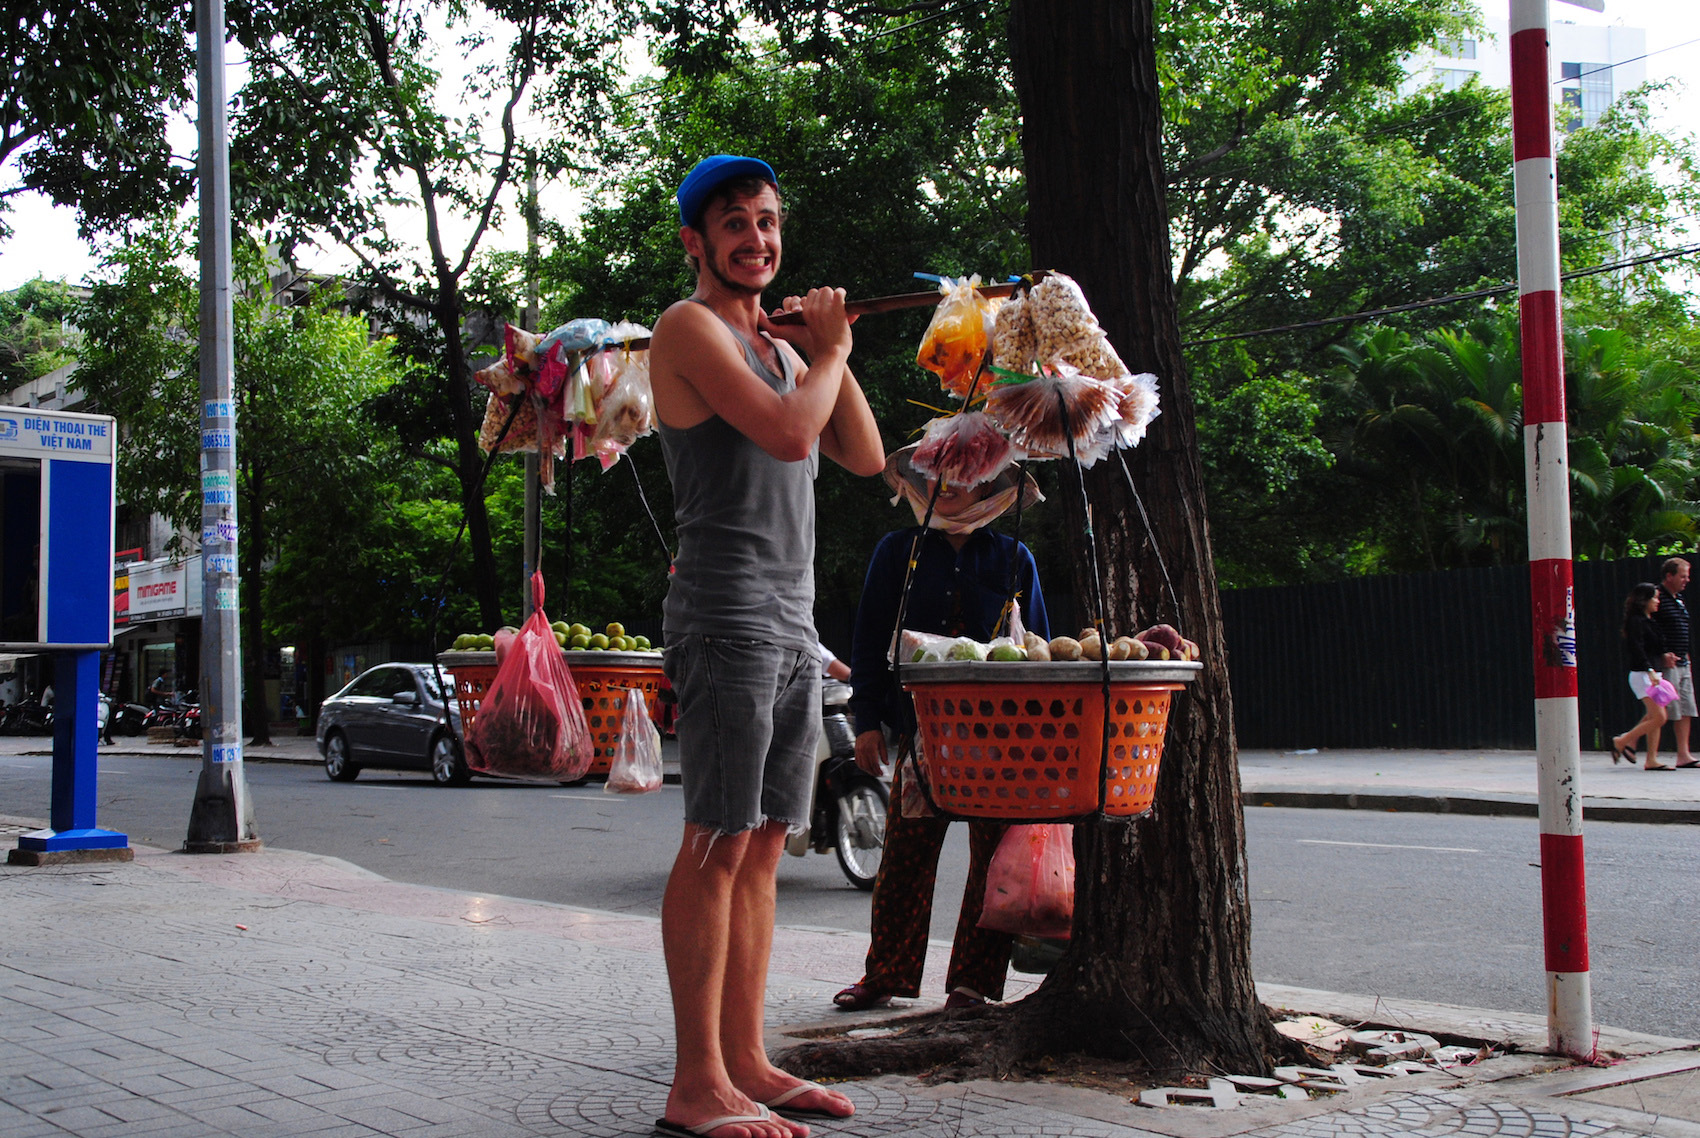 Robert Schrader in Ho Chi Minh City, Vietnam